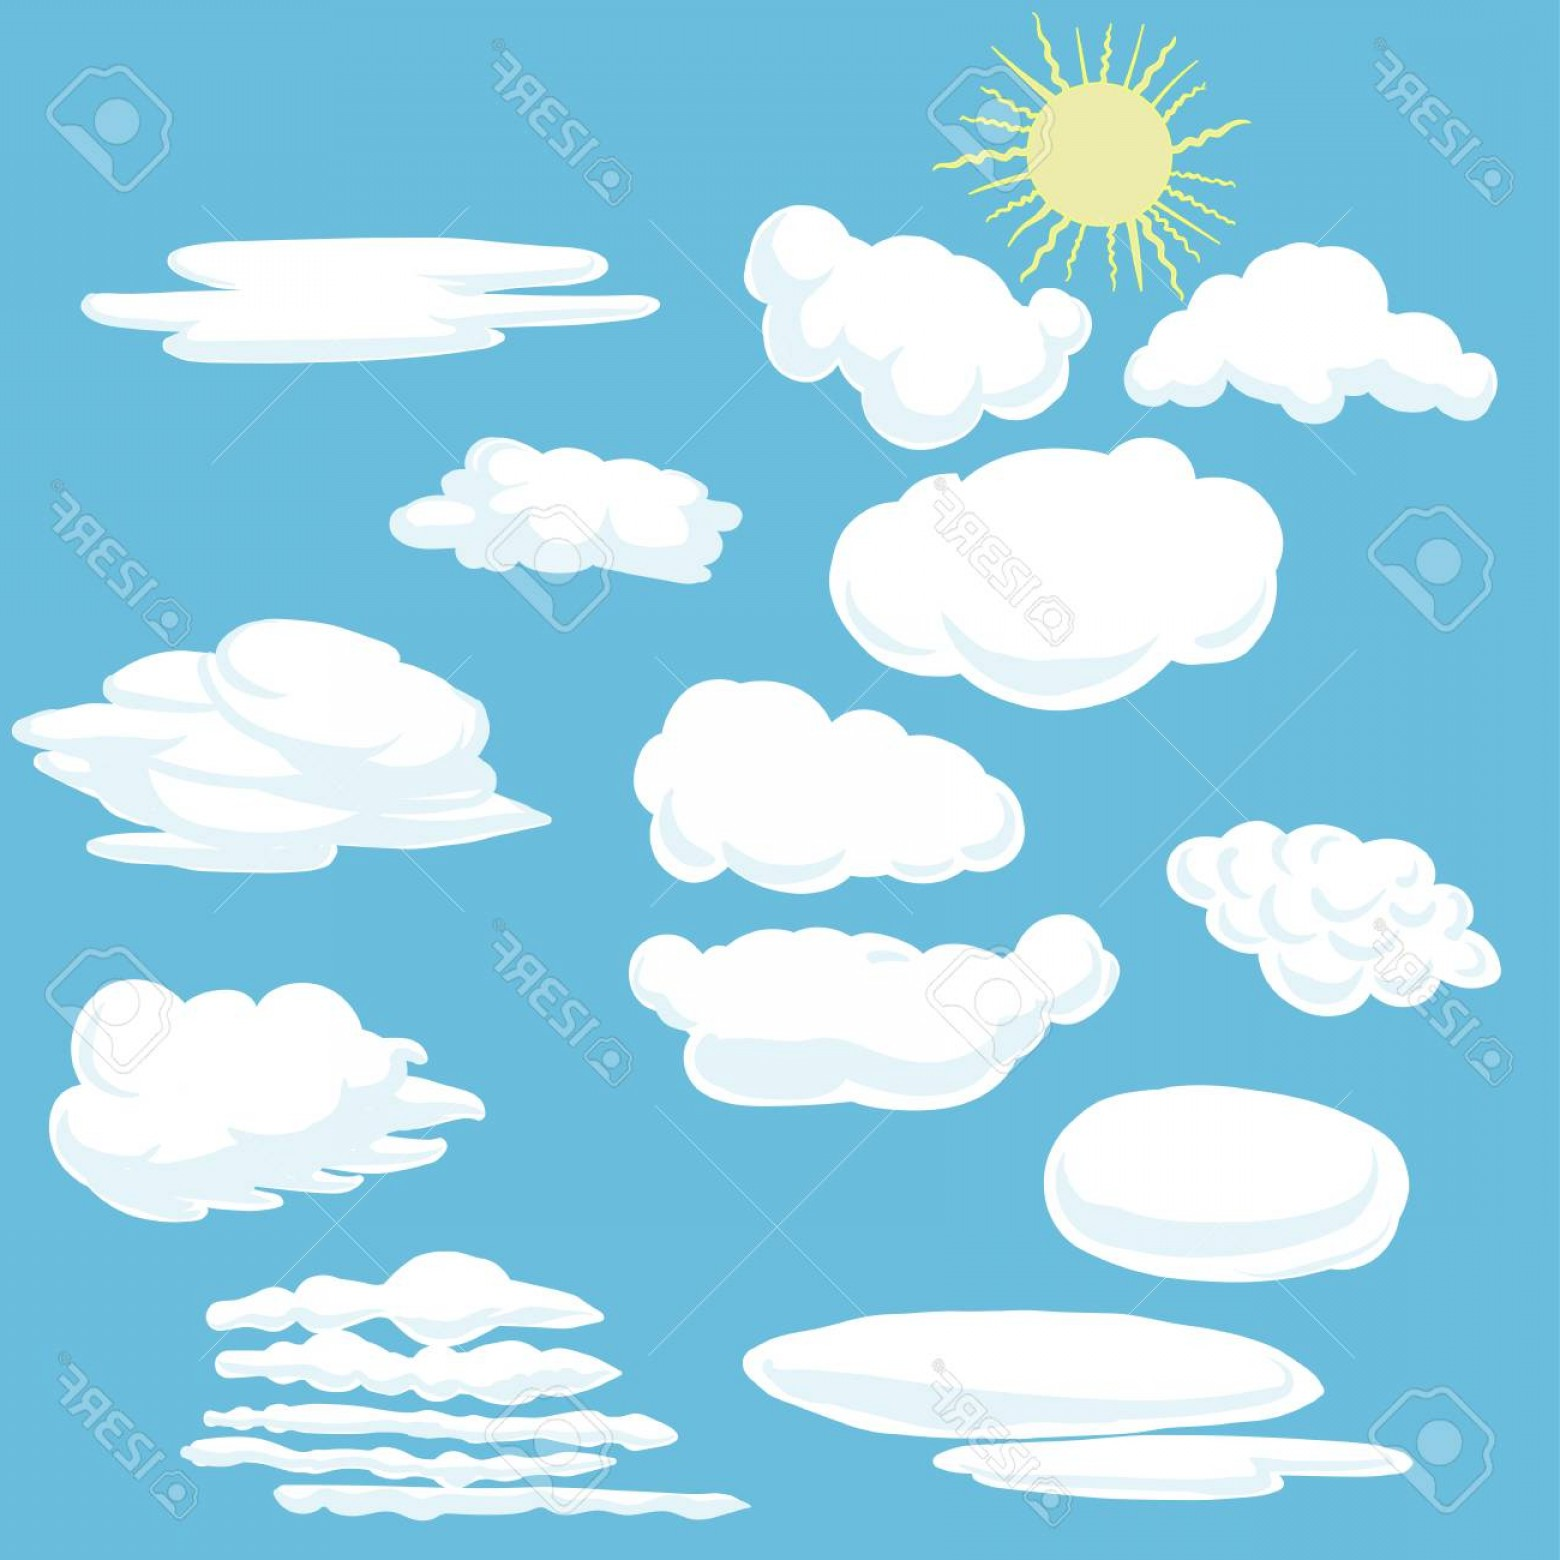 Blue Background Vector Cartoon Sun: Photostock Vector Cartoon Clouds And Sun Vector Illustration On Blue Background